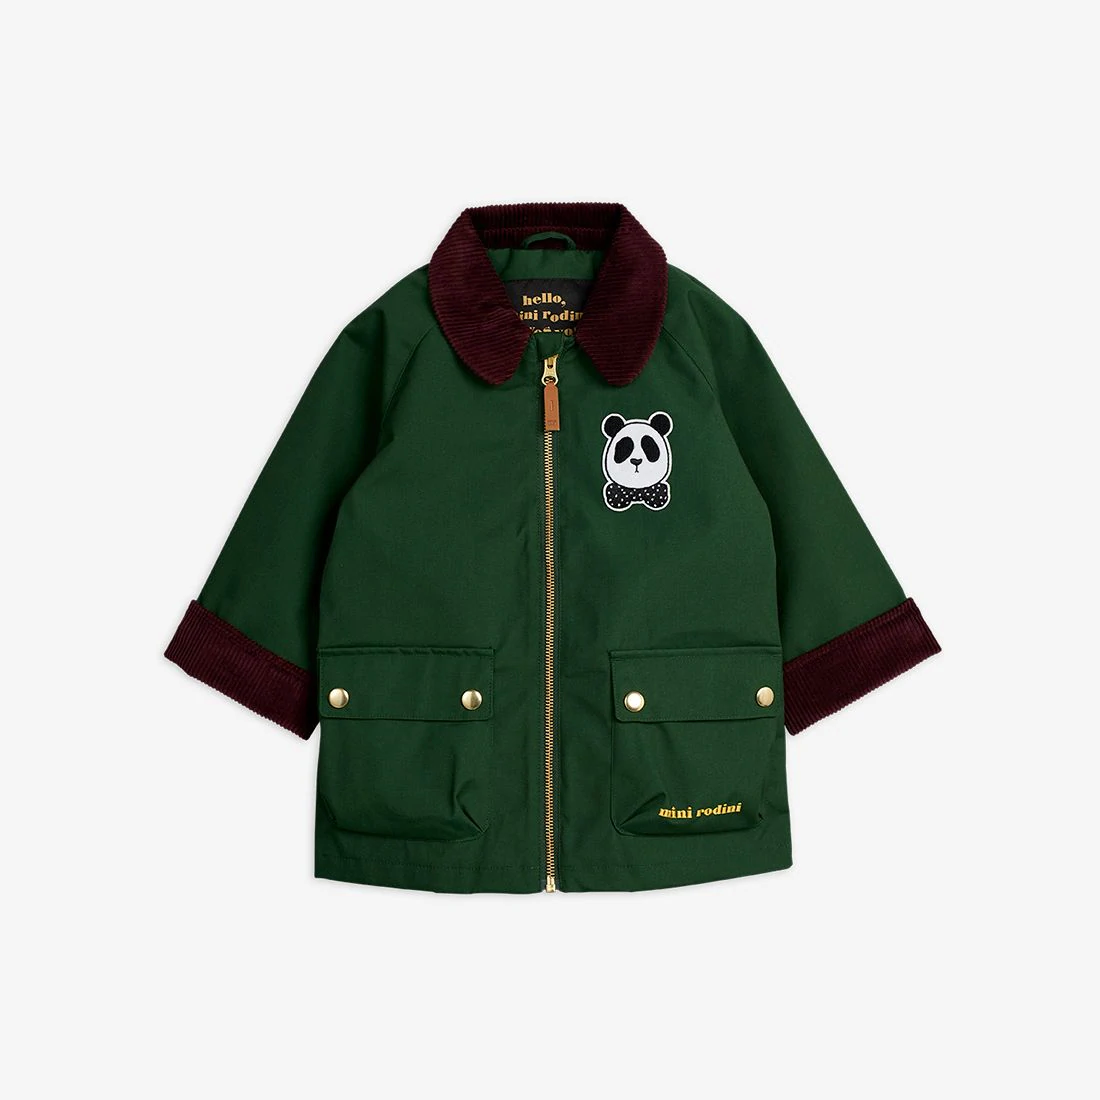 Lovely Green Country Jacket